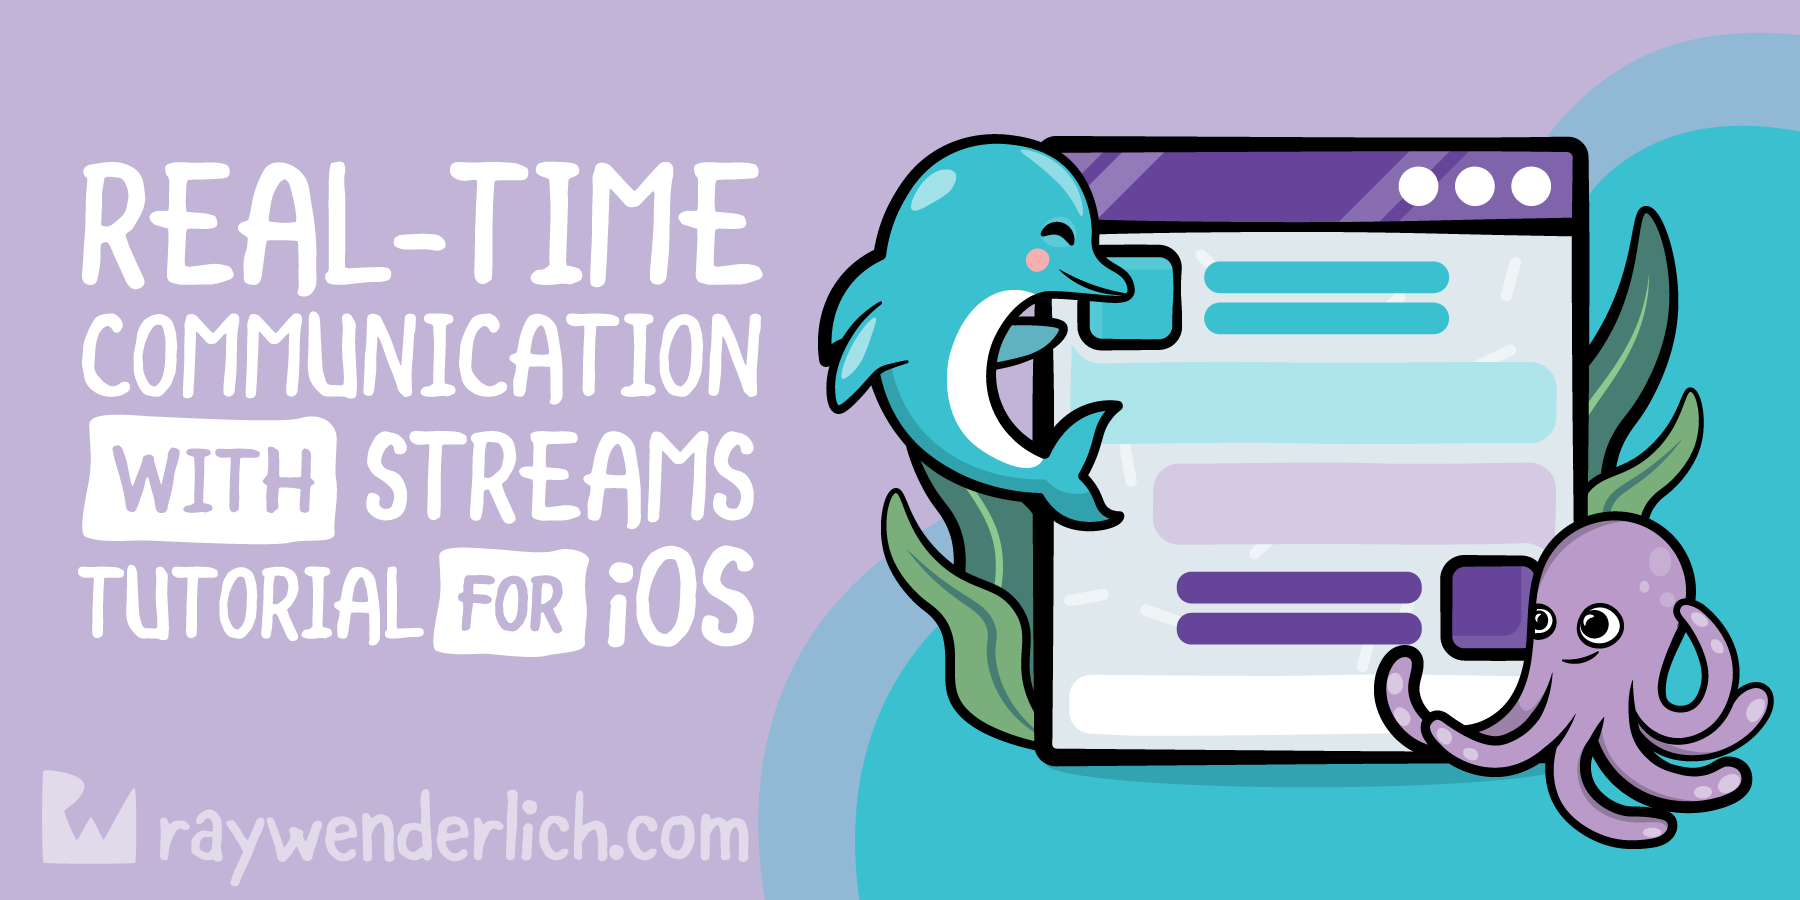 Real-Time Communication with Streams Tutorial for iOS